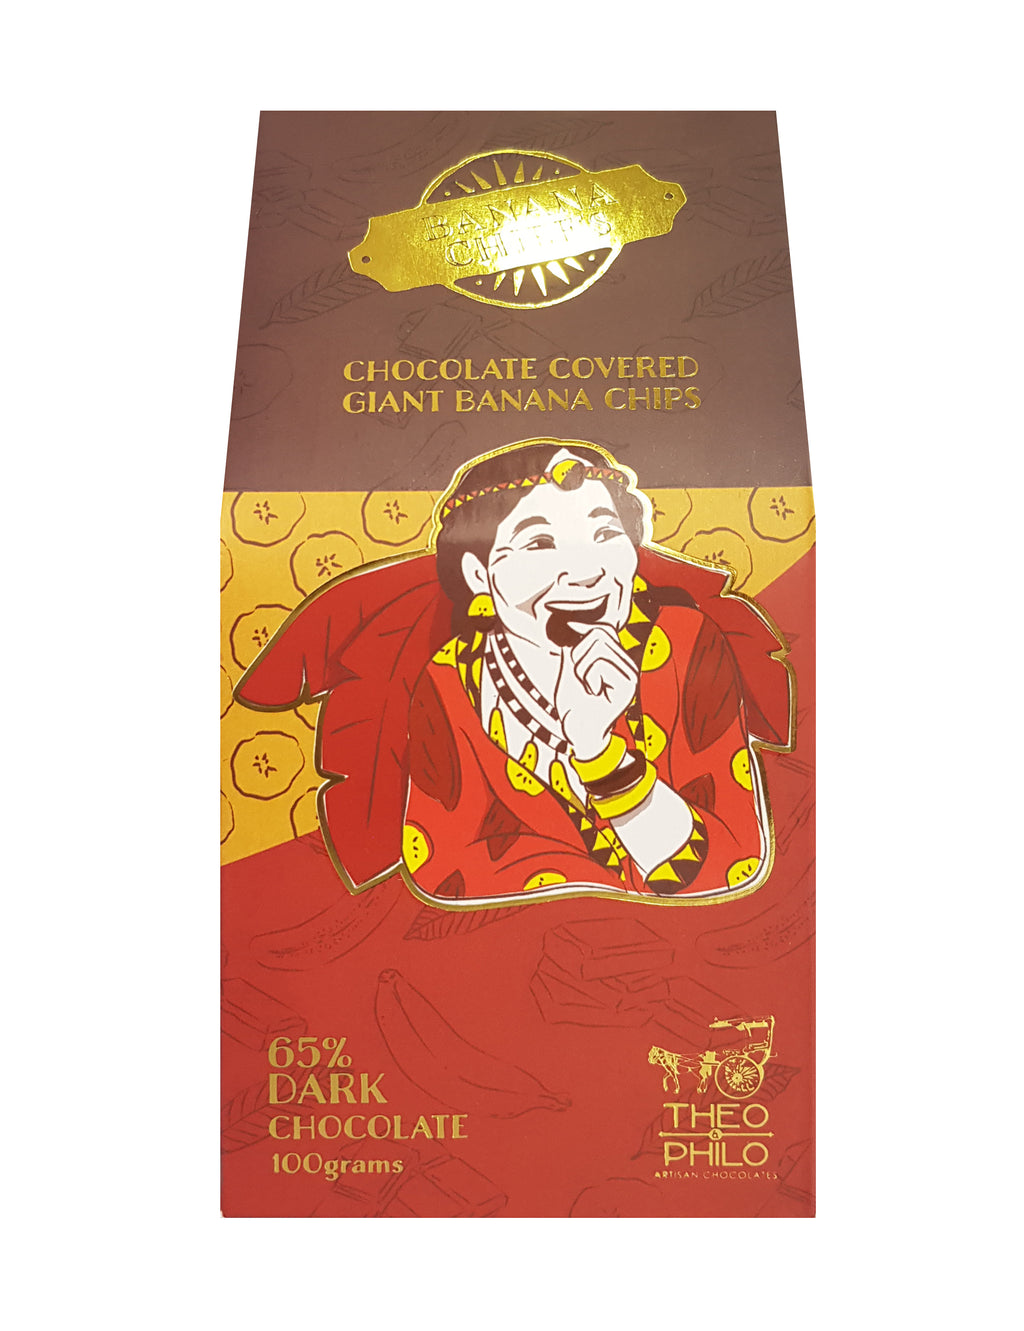 Banana Chief's x Theo & Philo - 65% Dark Chocolate-covered Giant Banana Chips (100 grams)